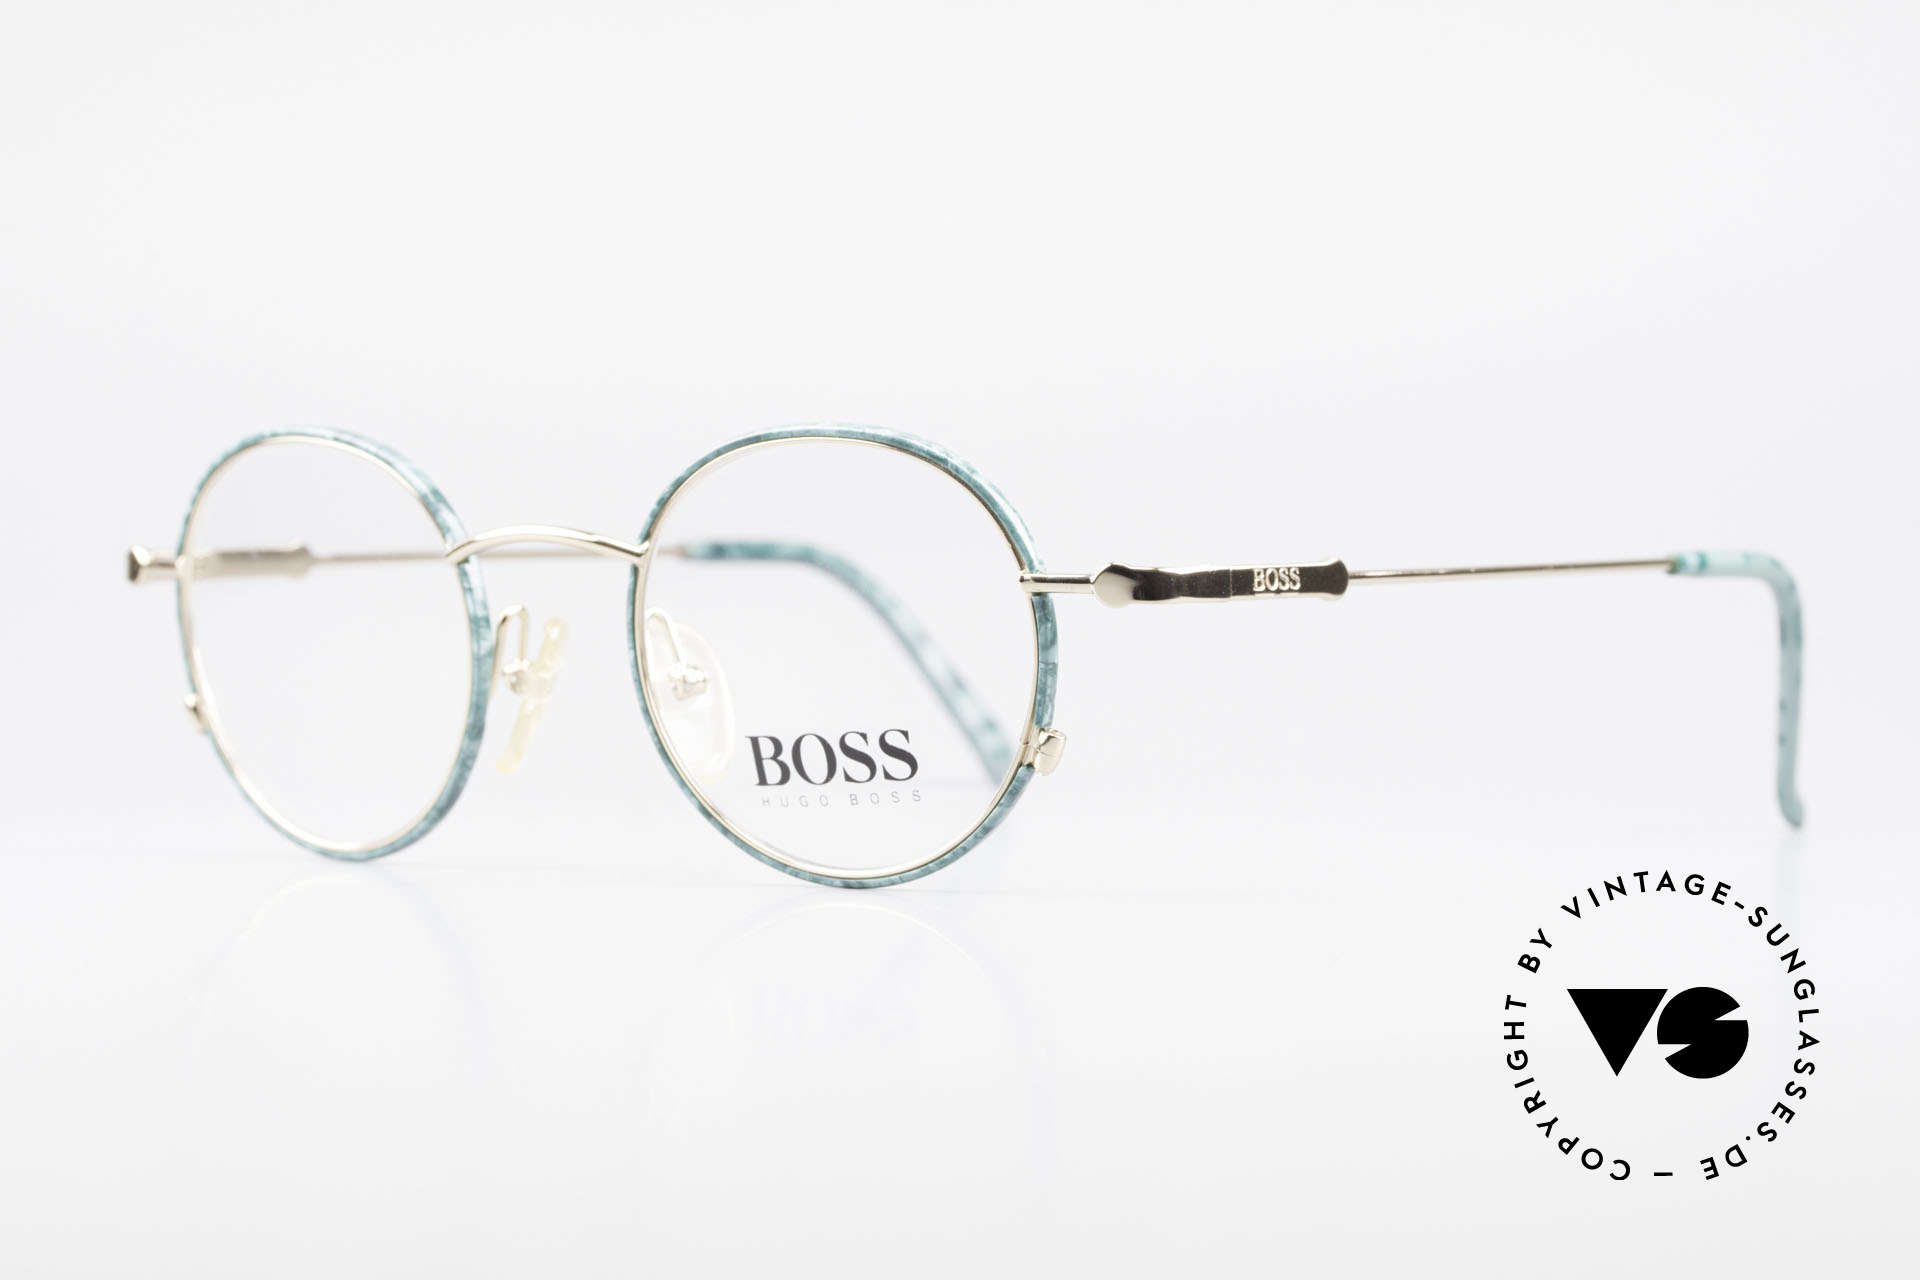 BOSS 5148 Round Panto Eyeglass Frame, dressy color combination: green marbled / GOLD, Made for Men and Women